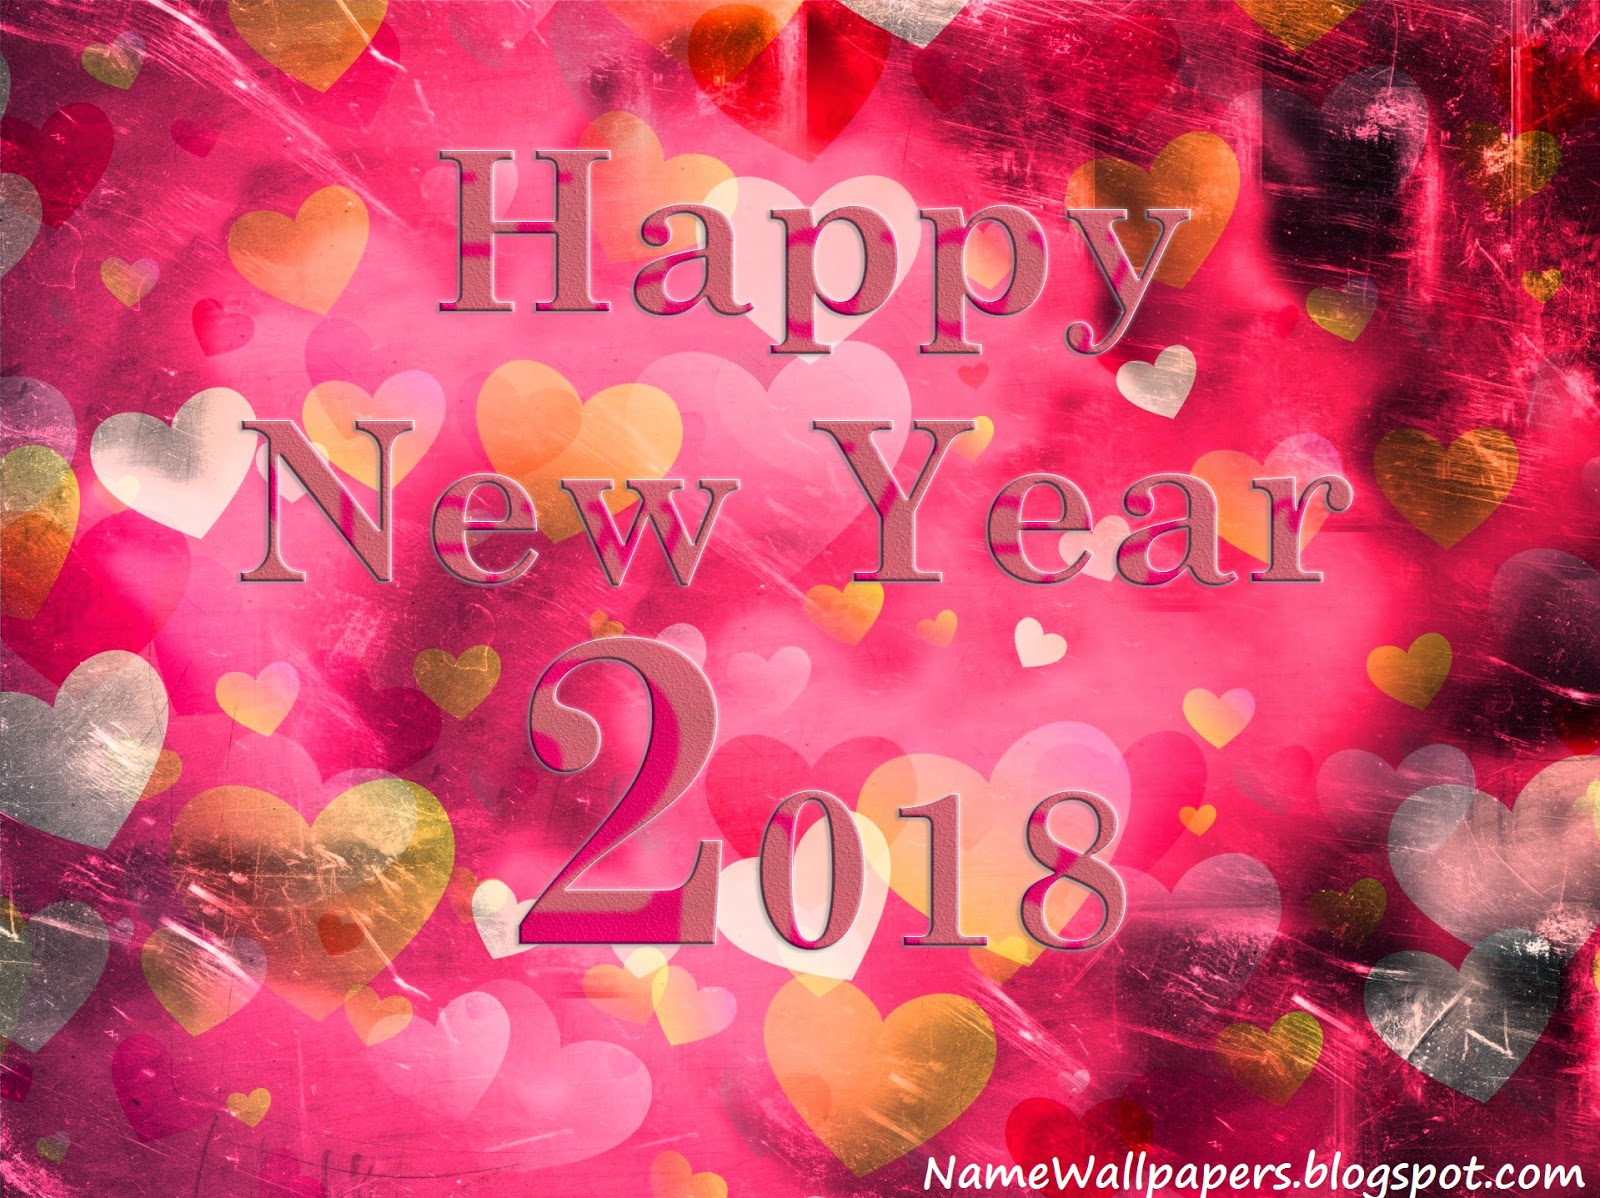 happy new year 2018 wallpapers hd images pictures 2018 1600x1198